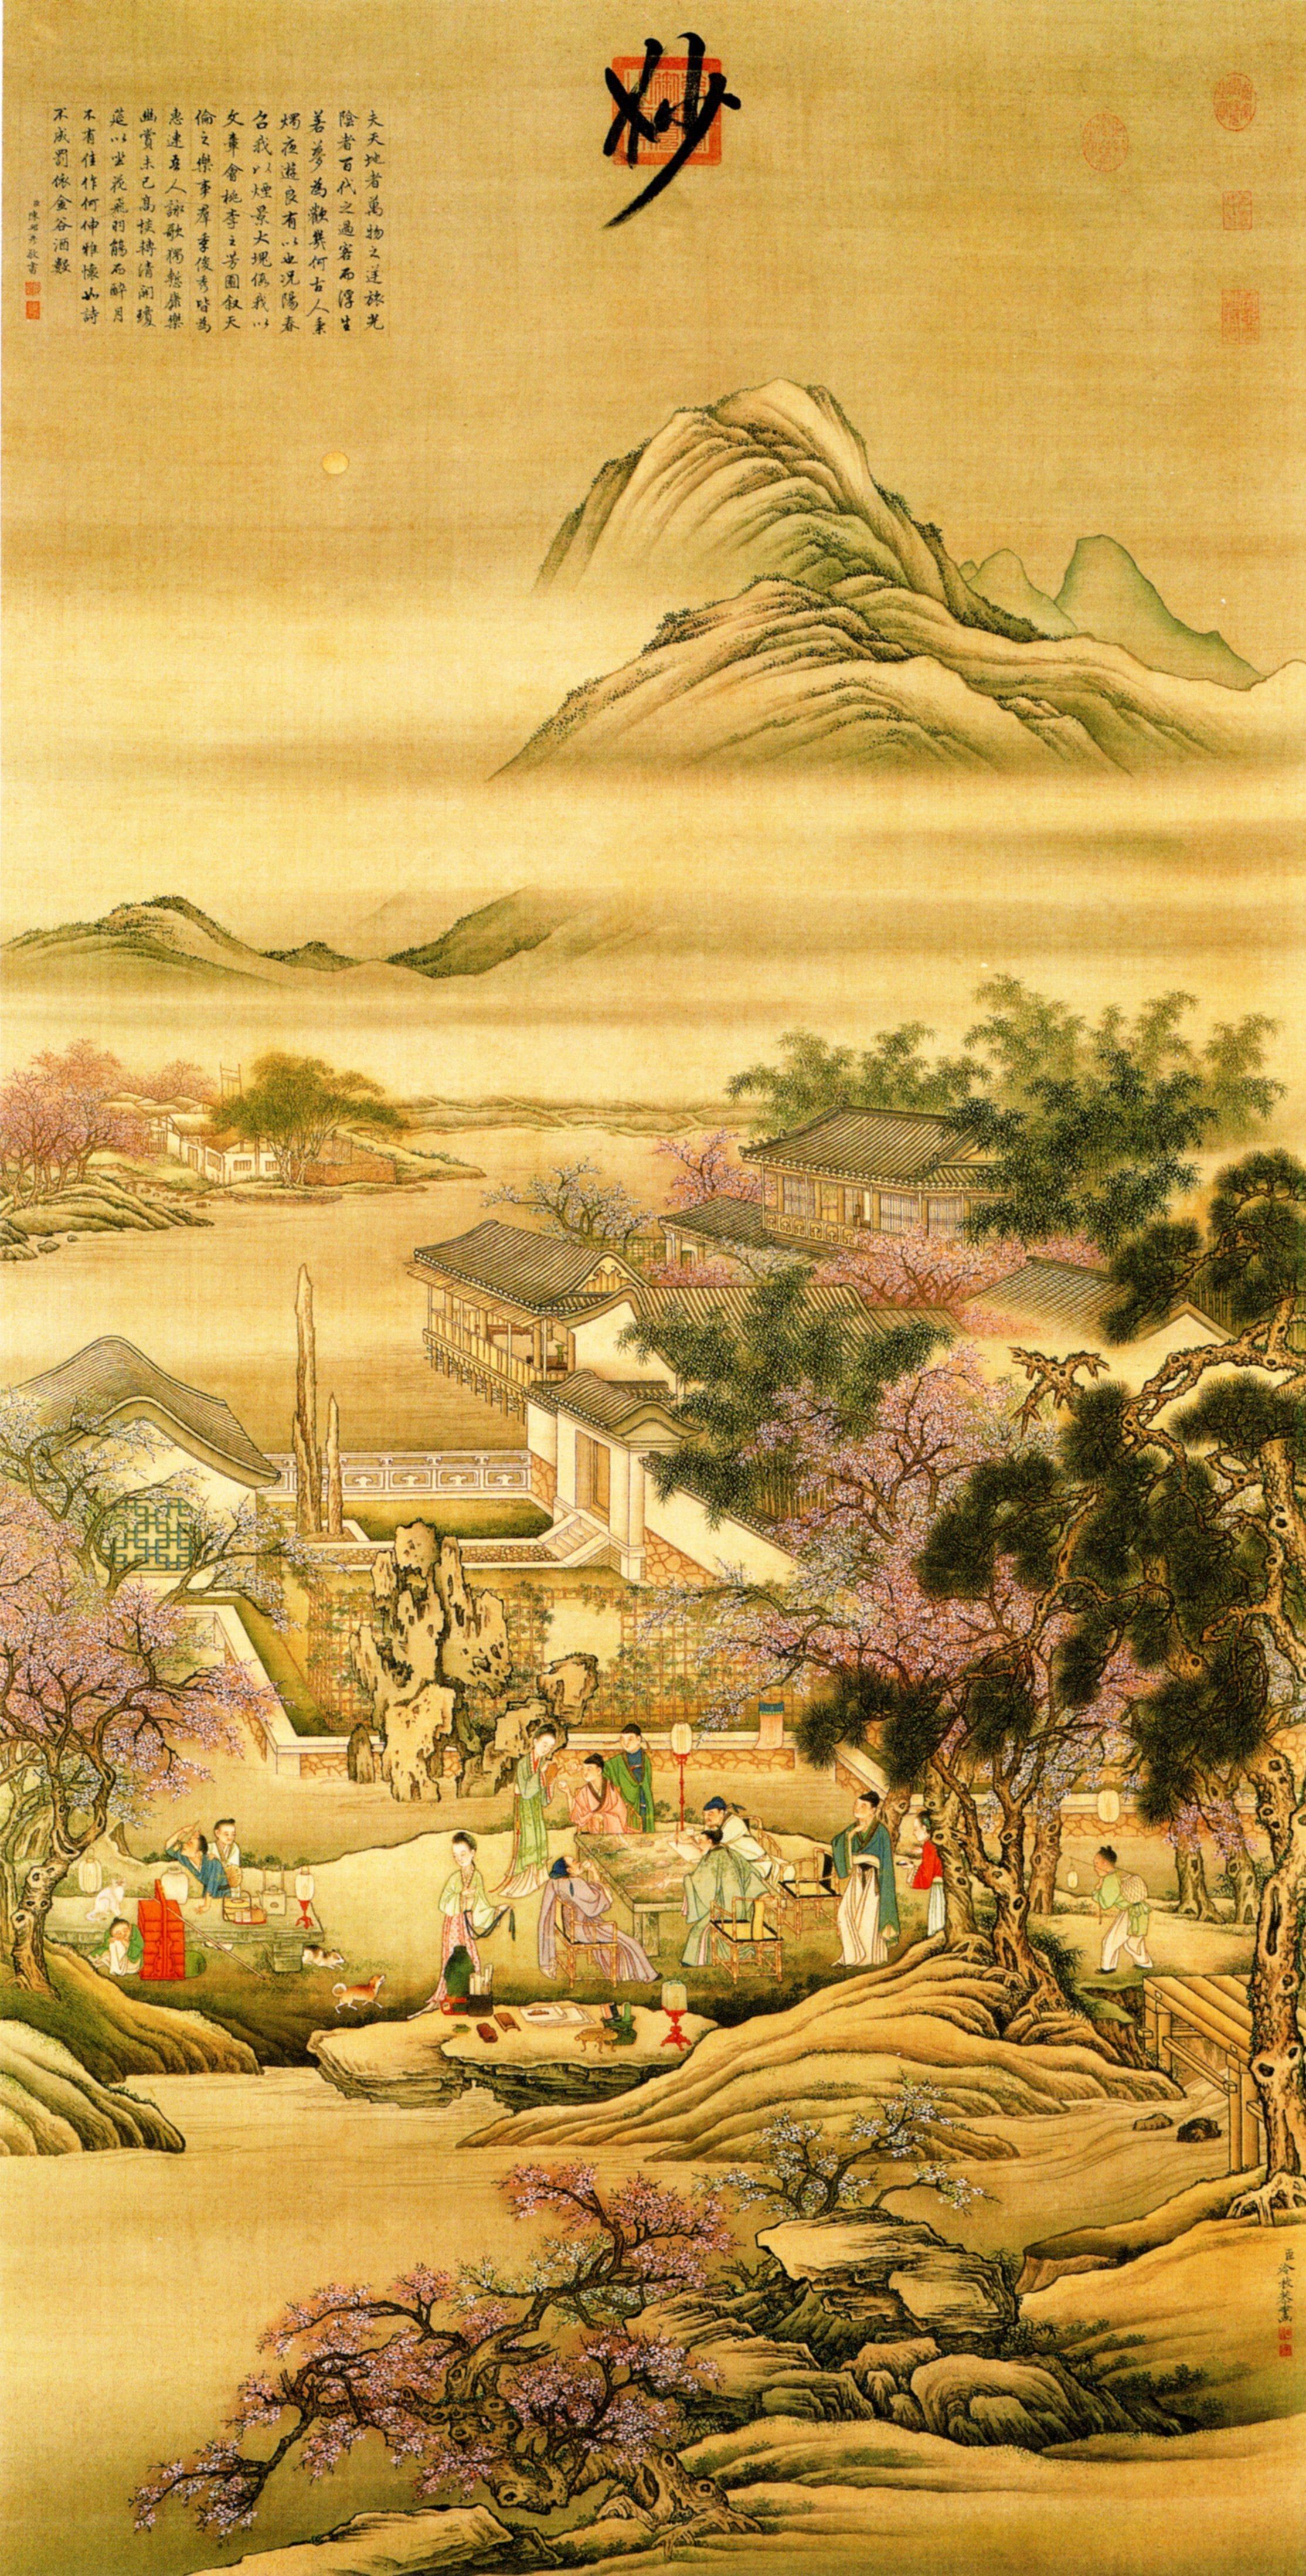 Spring Evening Banquet at the Peach and Pear Blossom Garden with quoted text by Li Bai, painted by Leng Mei, late 17th/early 18th cent. National Palace Museum, Taipei